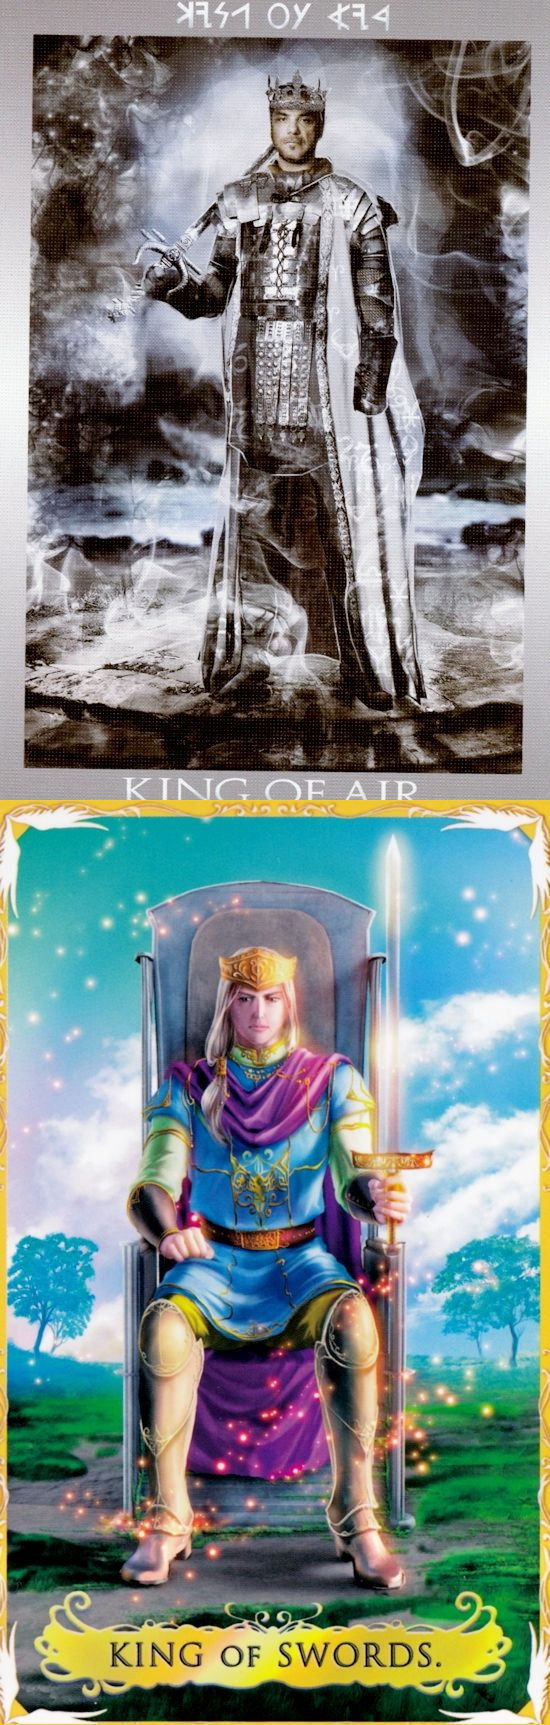 King of Swords: power and manipulative (reverse). Ibiza Tarot deck and Alchemia Tarot deck: free yes no tarot, tarot thoth vs tarot card reading online free uk. The best ritual symbols and halloween decorations.